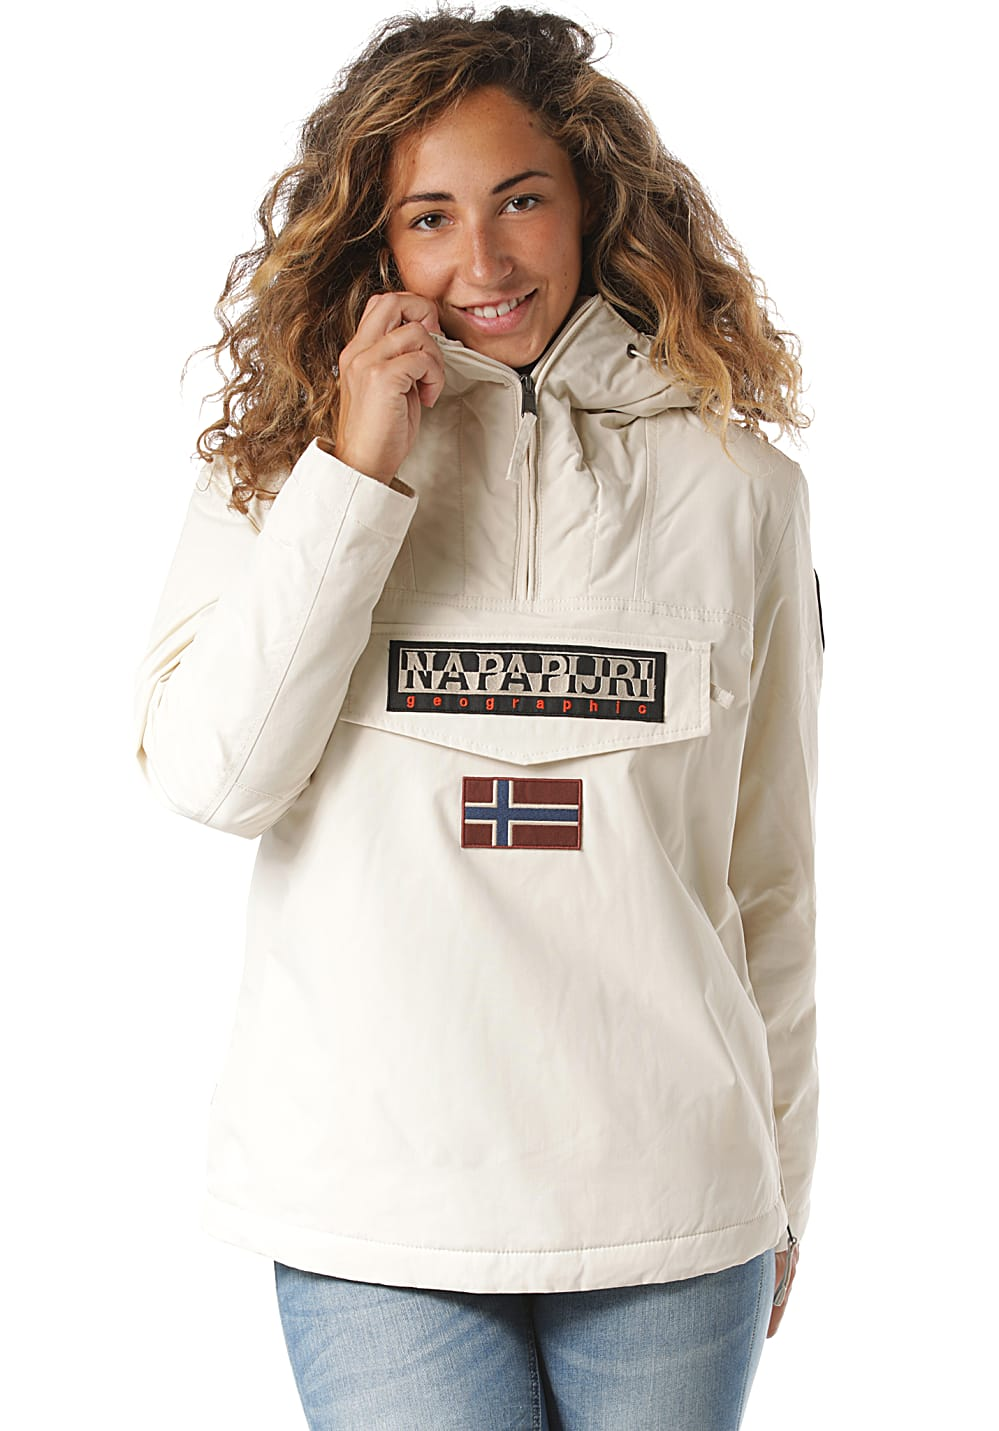 Jacken für Frauen - Napapijri Rainforest Winter 3 Jacke für Damen Beige  - Onlineshop Planet Sports